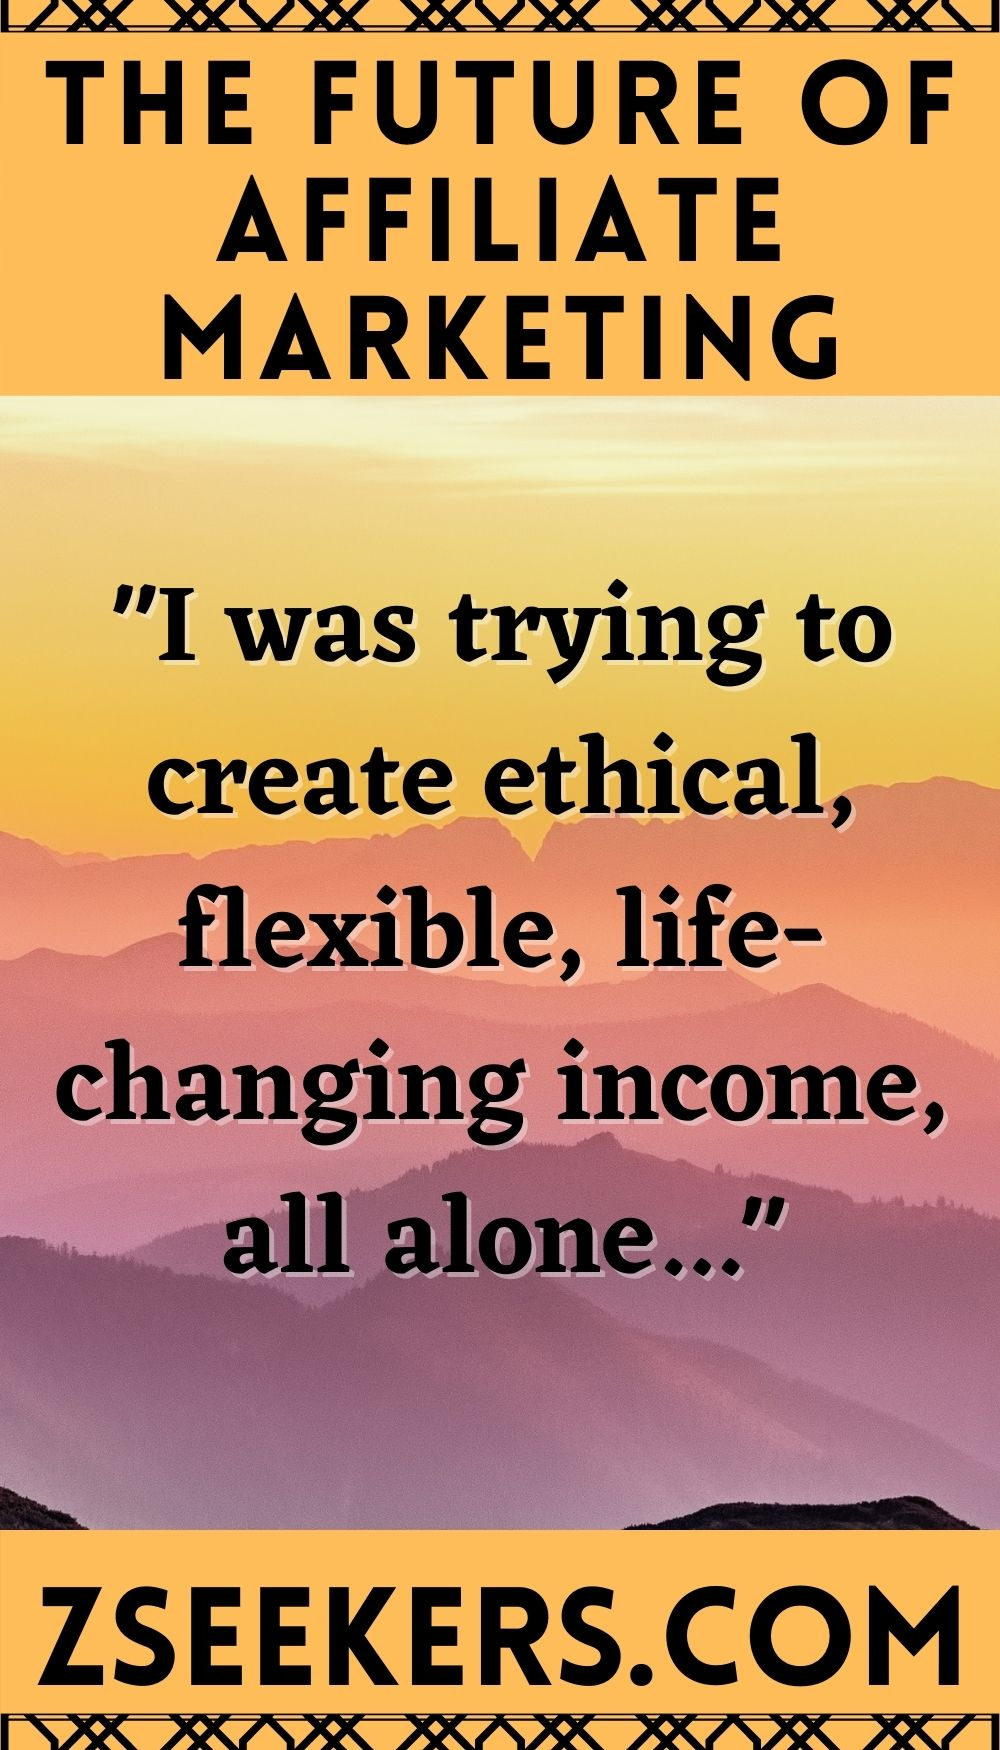 I was trying to create ethical, flexible, life-shcnaing income, all alone